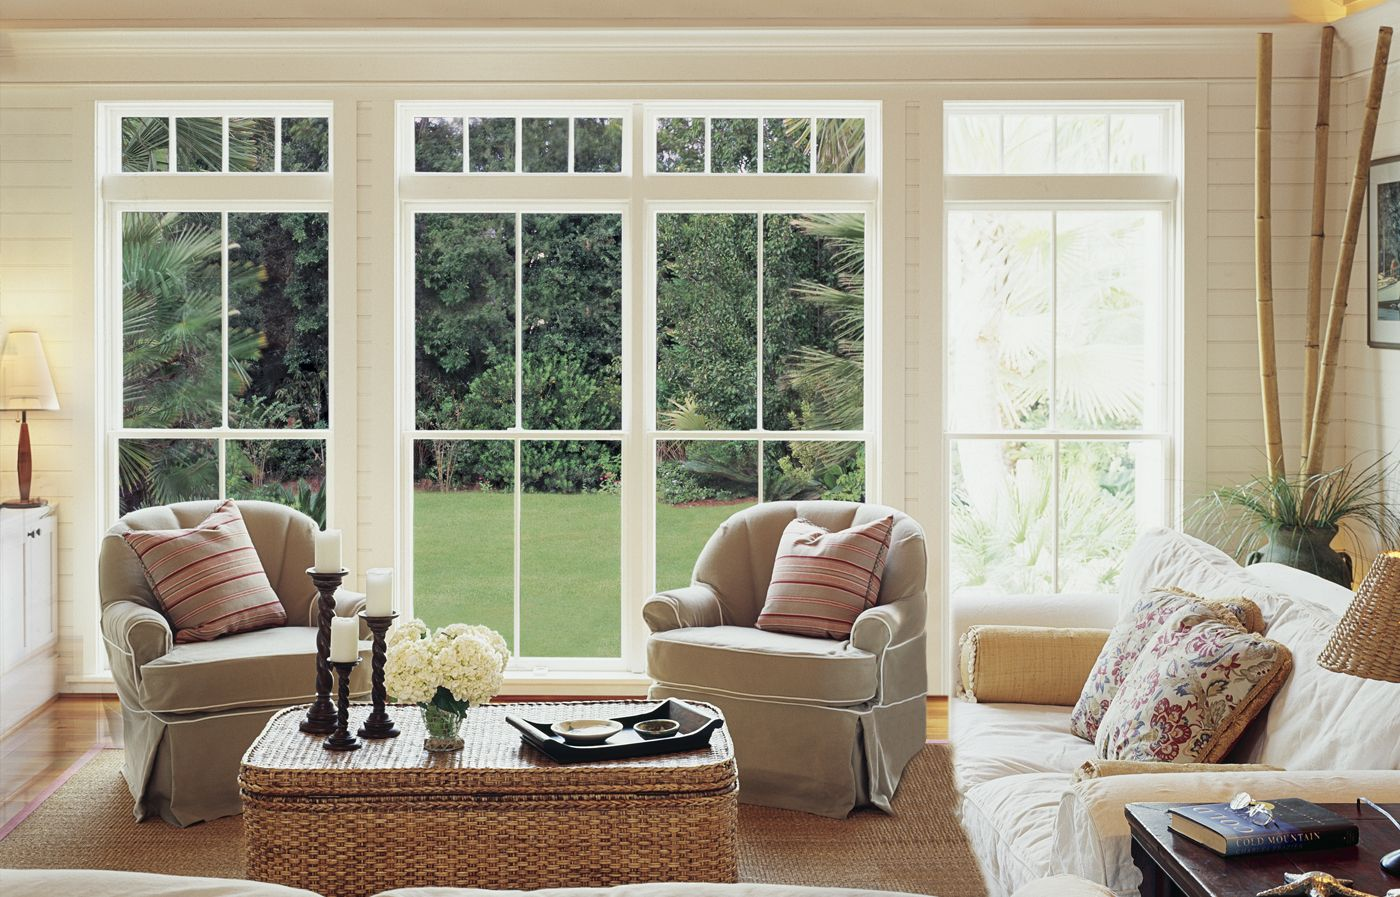 All About Wood Windows Coastal Beach Living Wooden